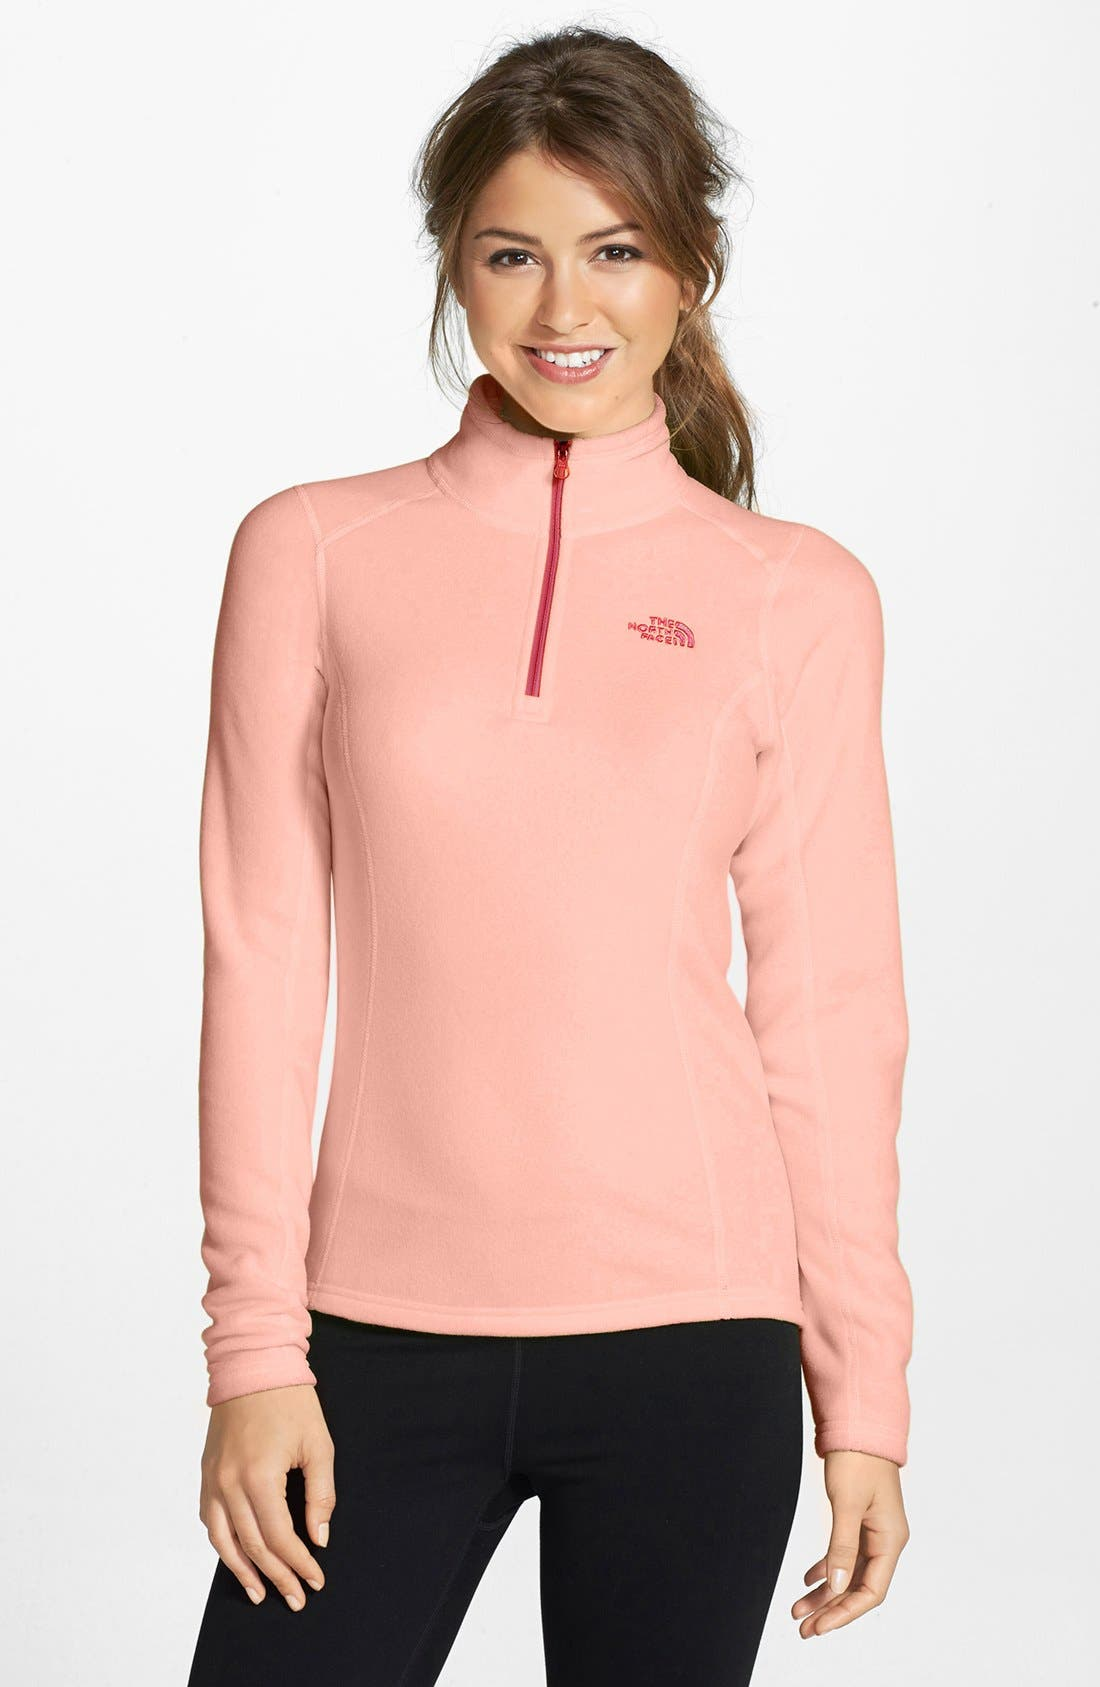 Alternate Image 1 Selected - The North Face 'Glacier' Quarter Zip Pullover